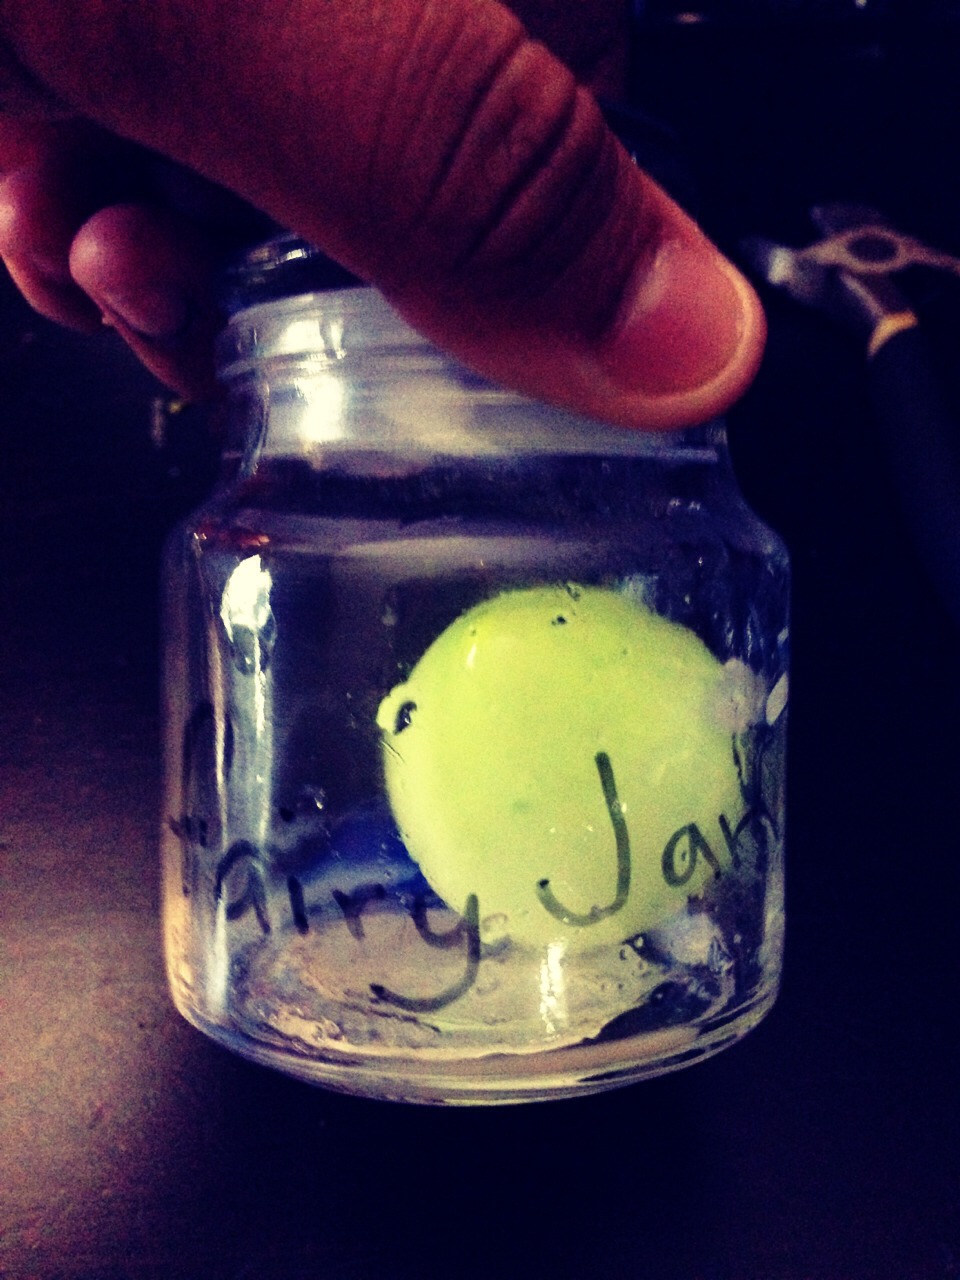 Put the ballon in the jar then close it and label it and then put it under the light to glow in the dark.